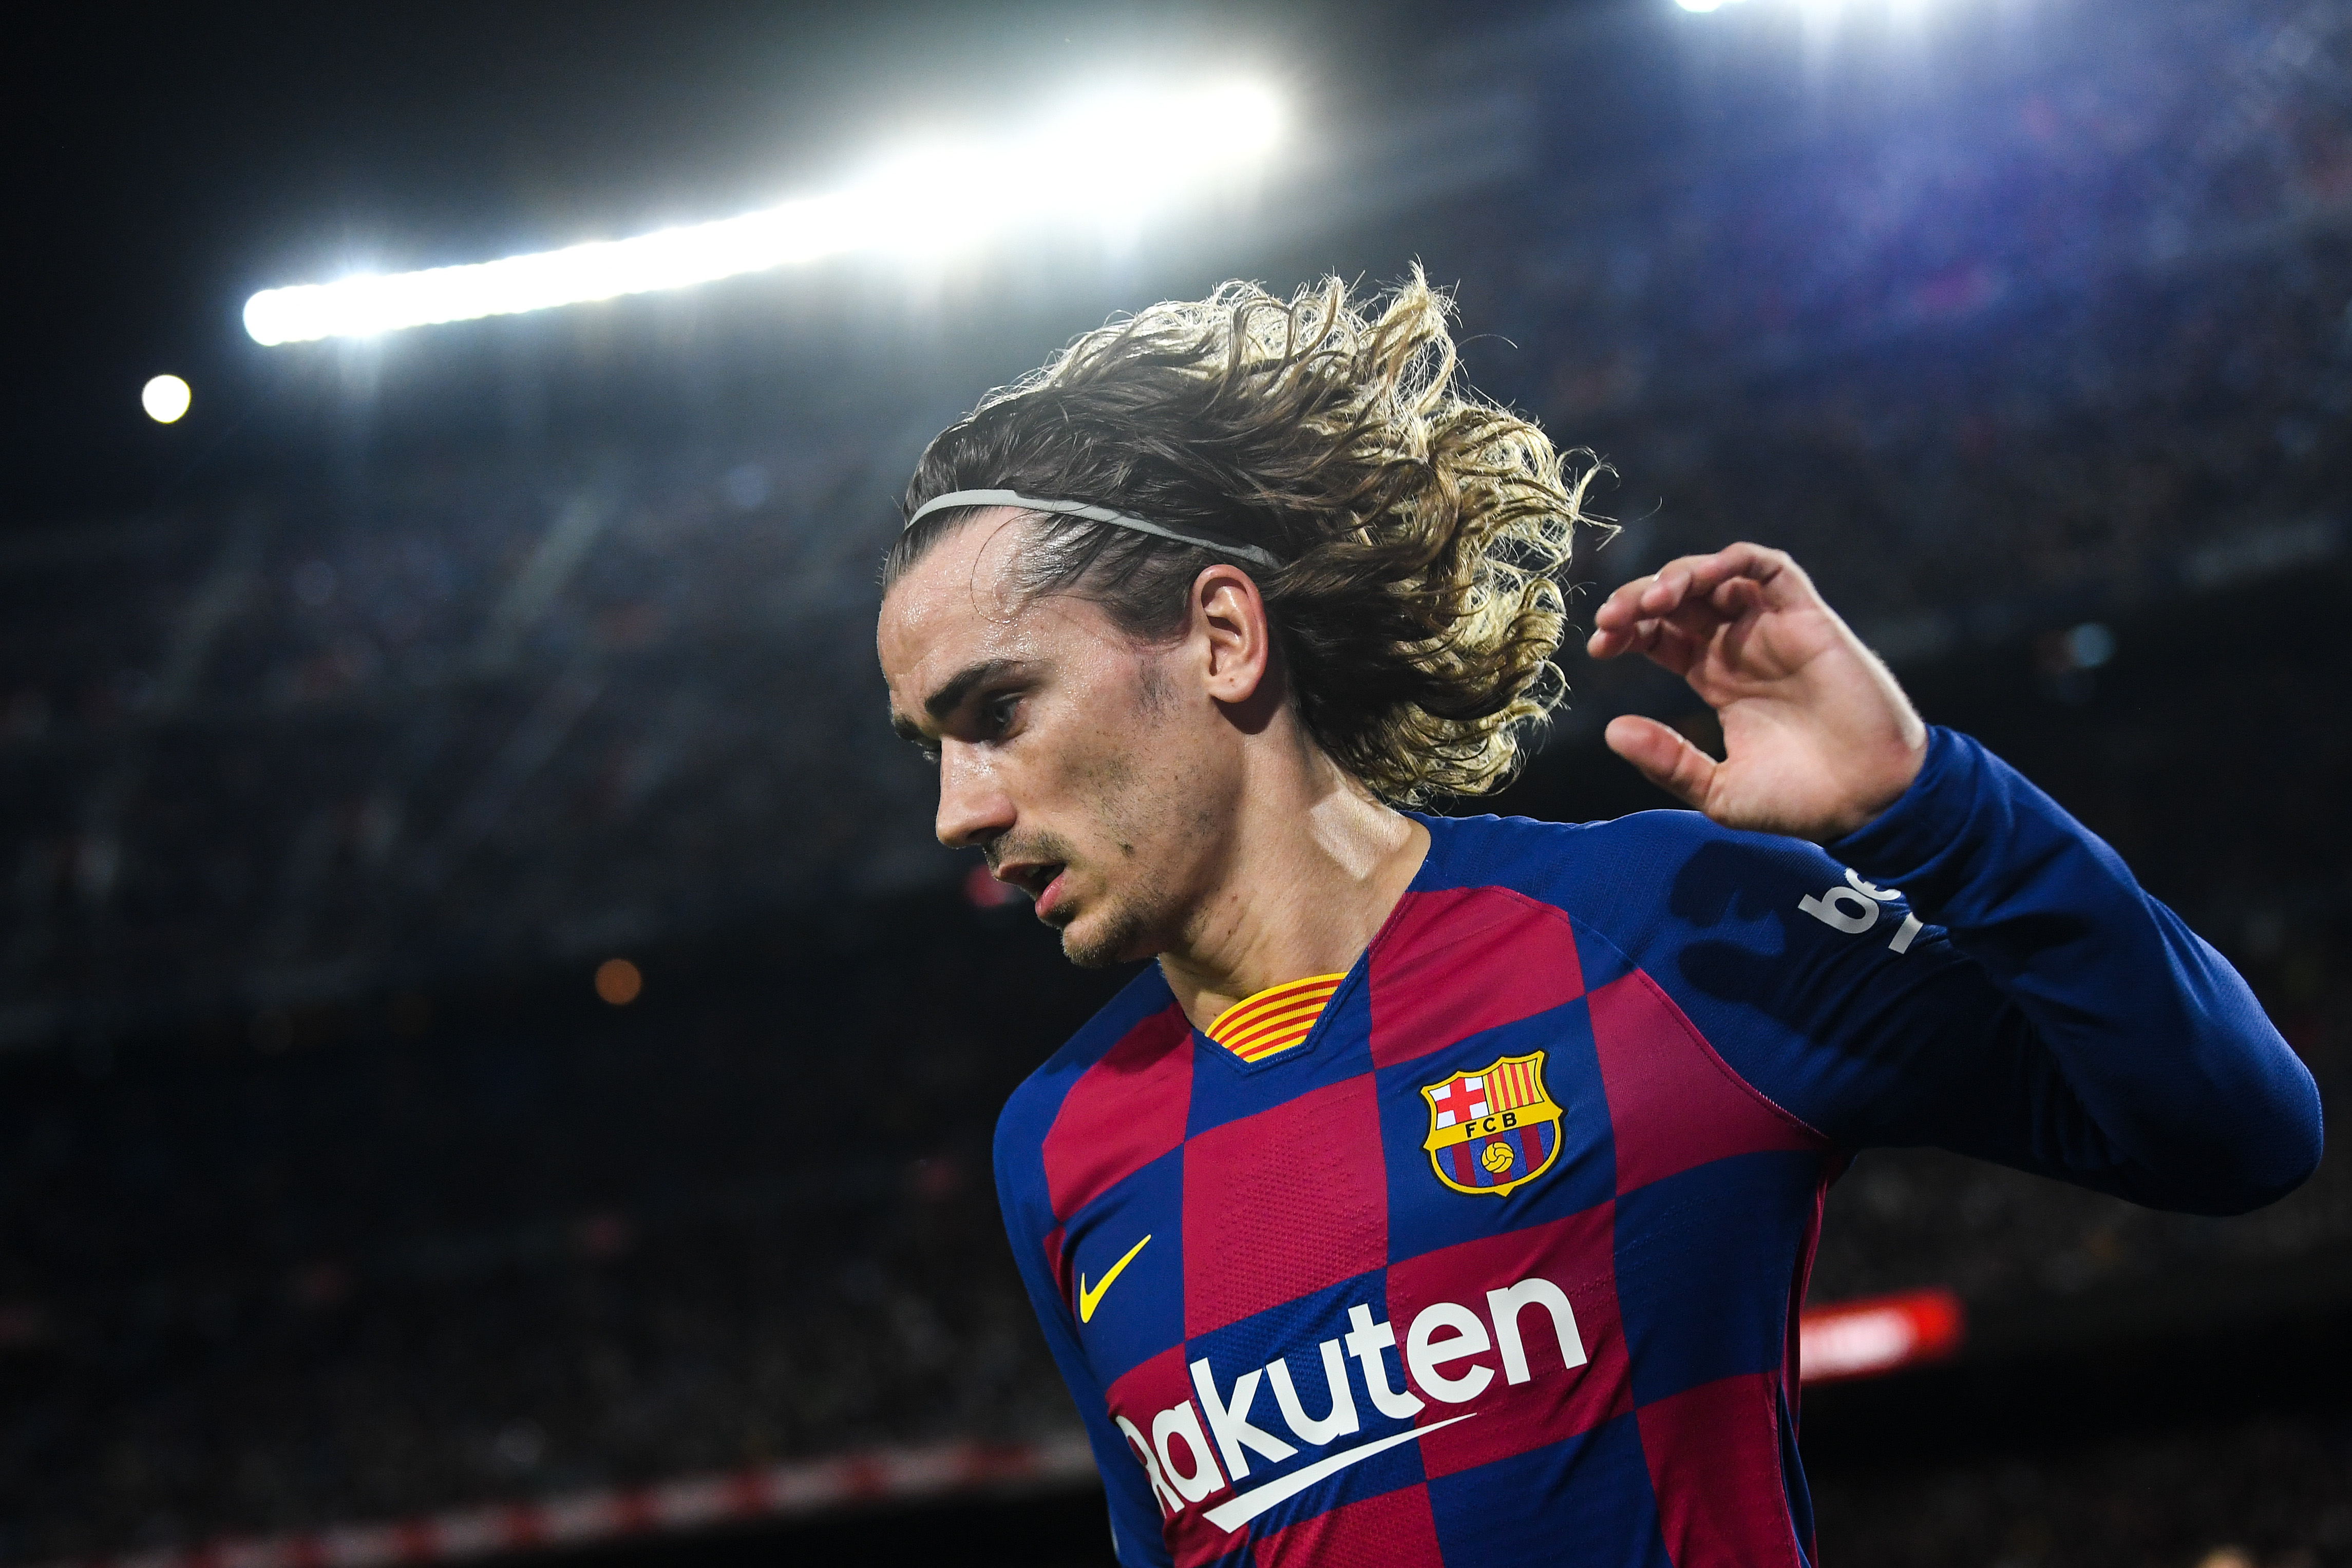 Antoine Griezmann is unavailable for selection for Barcelona (Photo by David Ramos/Getty Images)